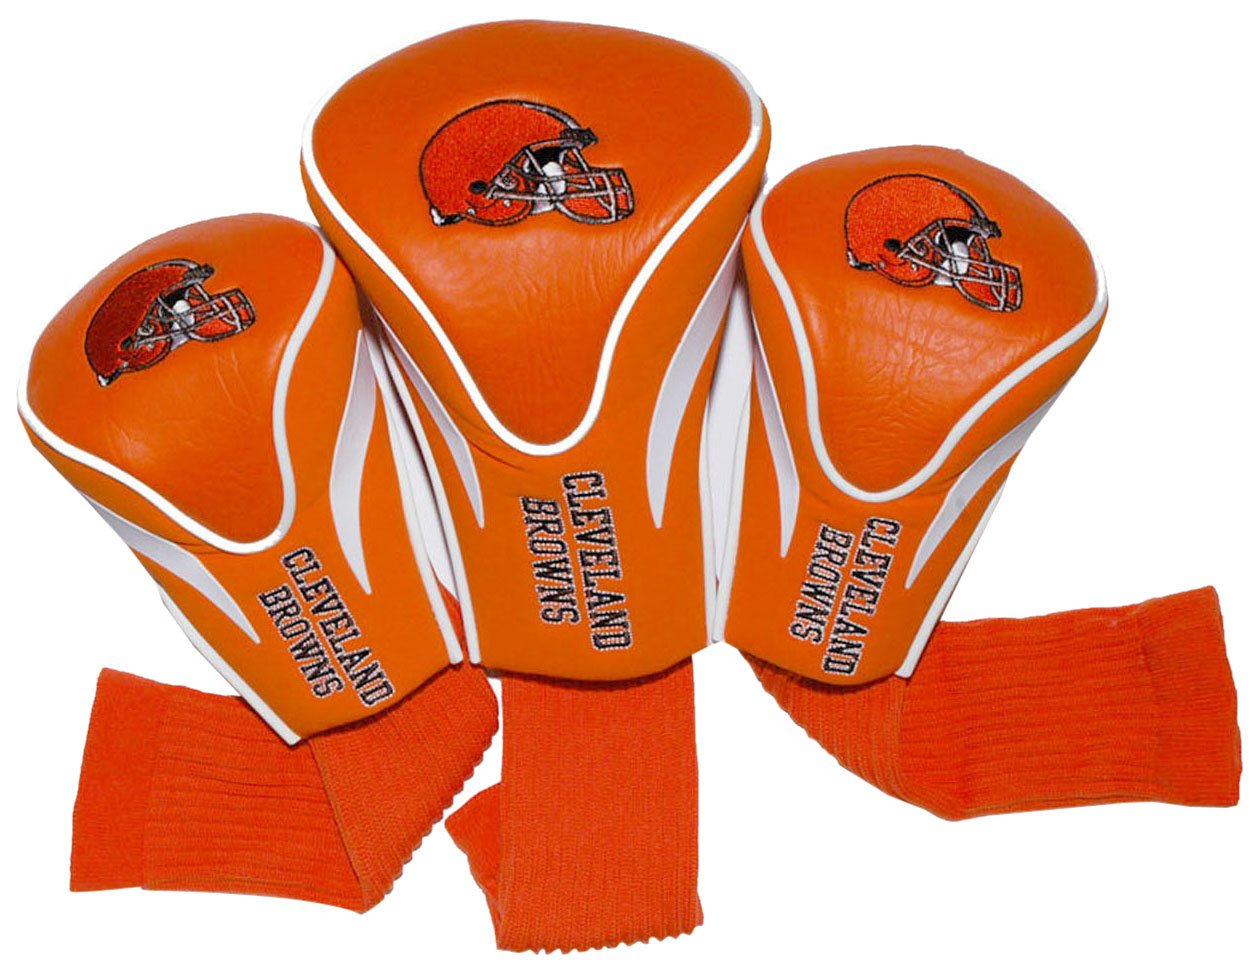 Team Golf NFL Cleveland Browns Contour Golf Club Headcovers (3 Count), Numbered 1, 3, & X, Fits Oversized Drivers, Utility, Rescue & Fairway Clubs, Velour lined for Extra Club Protection